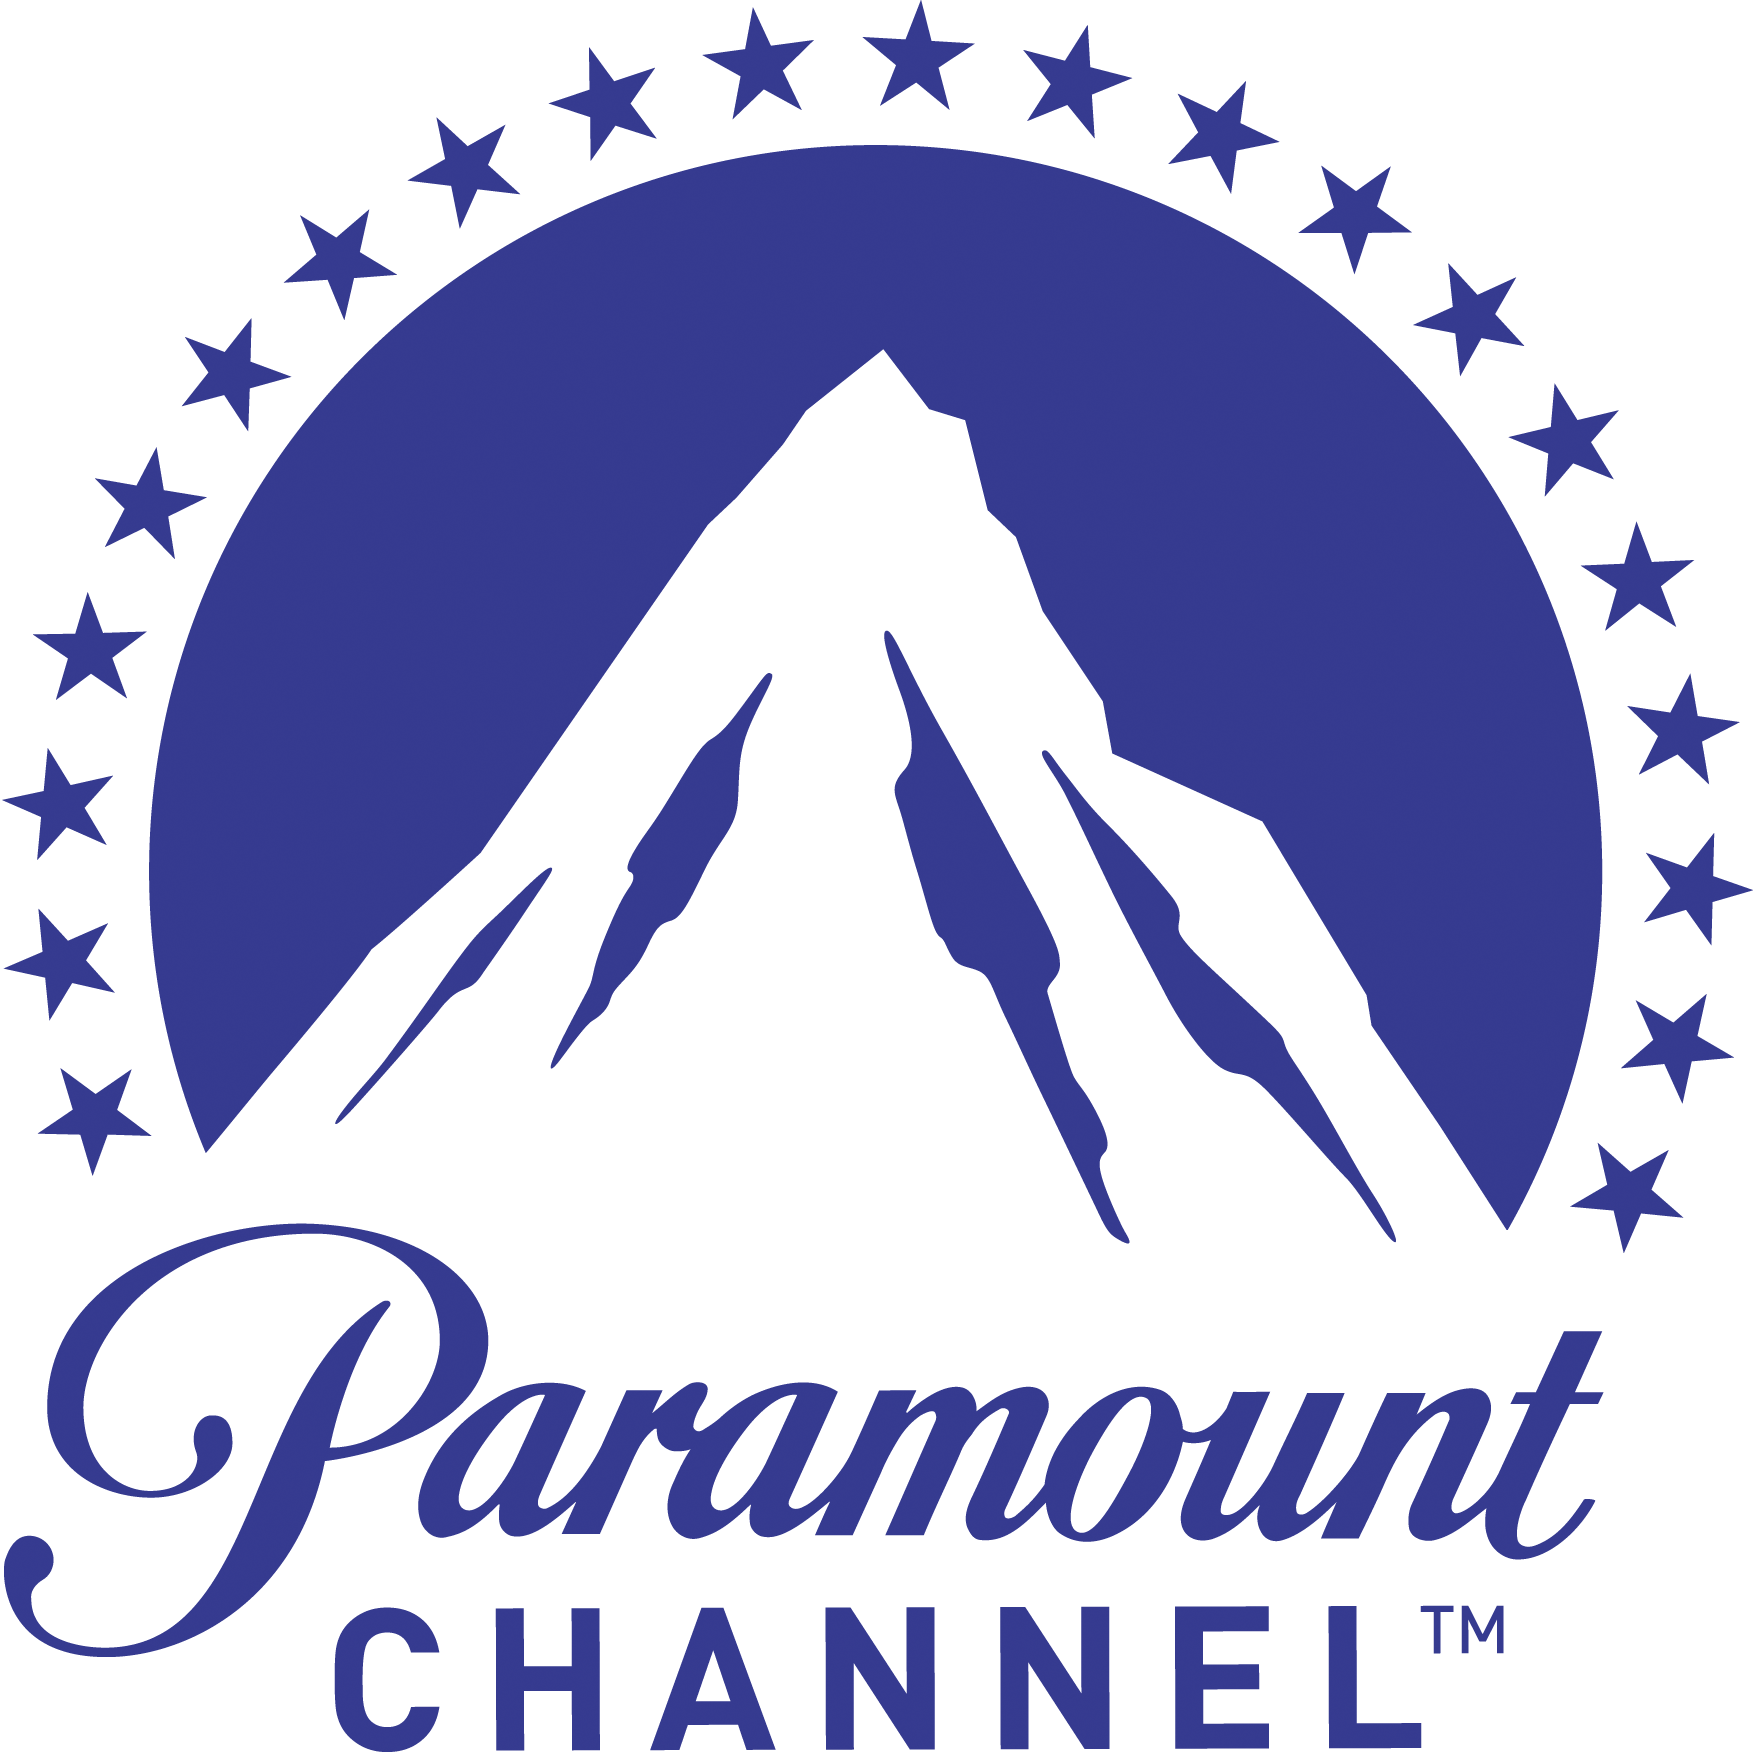 289228 paramount%20channel%20logo%20hi%20res 7a714c original 1536131554